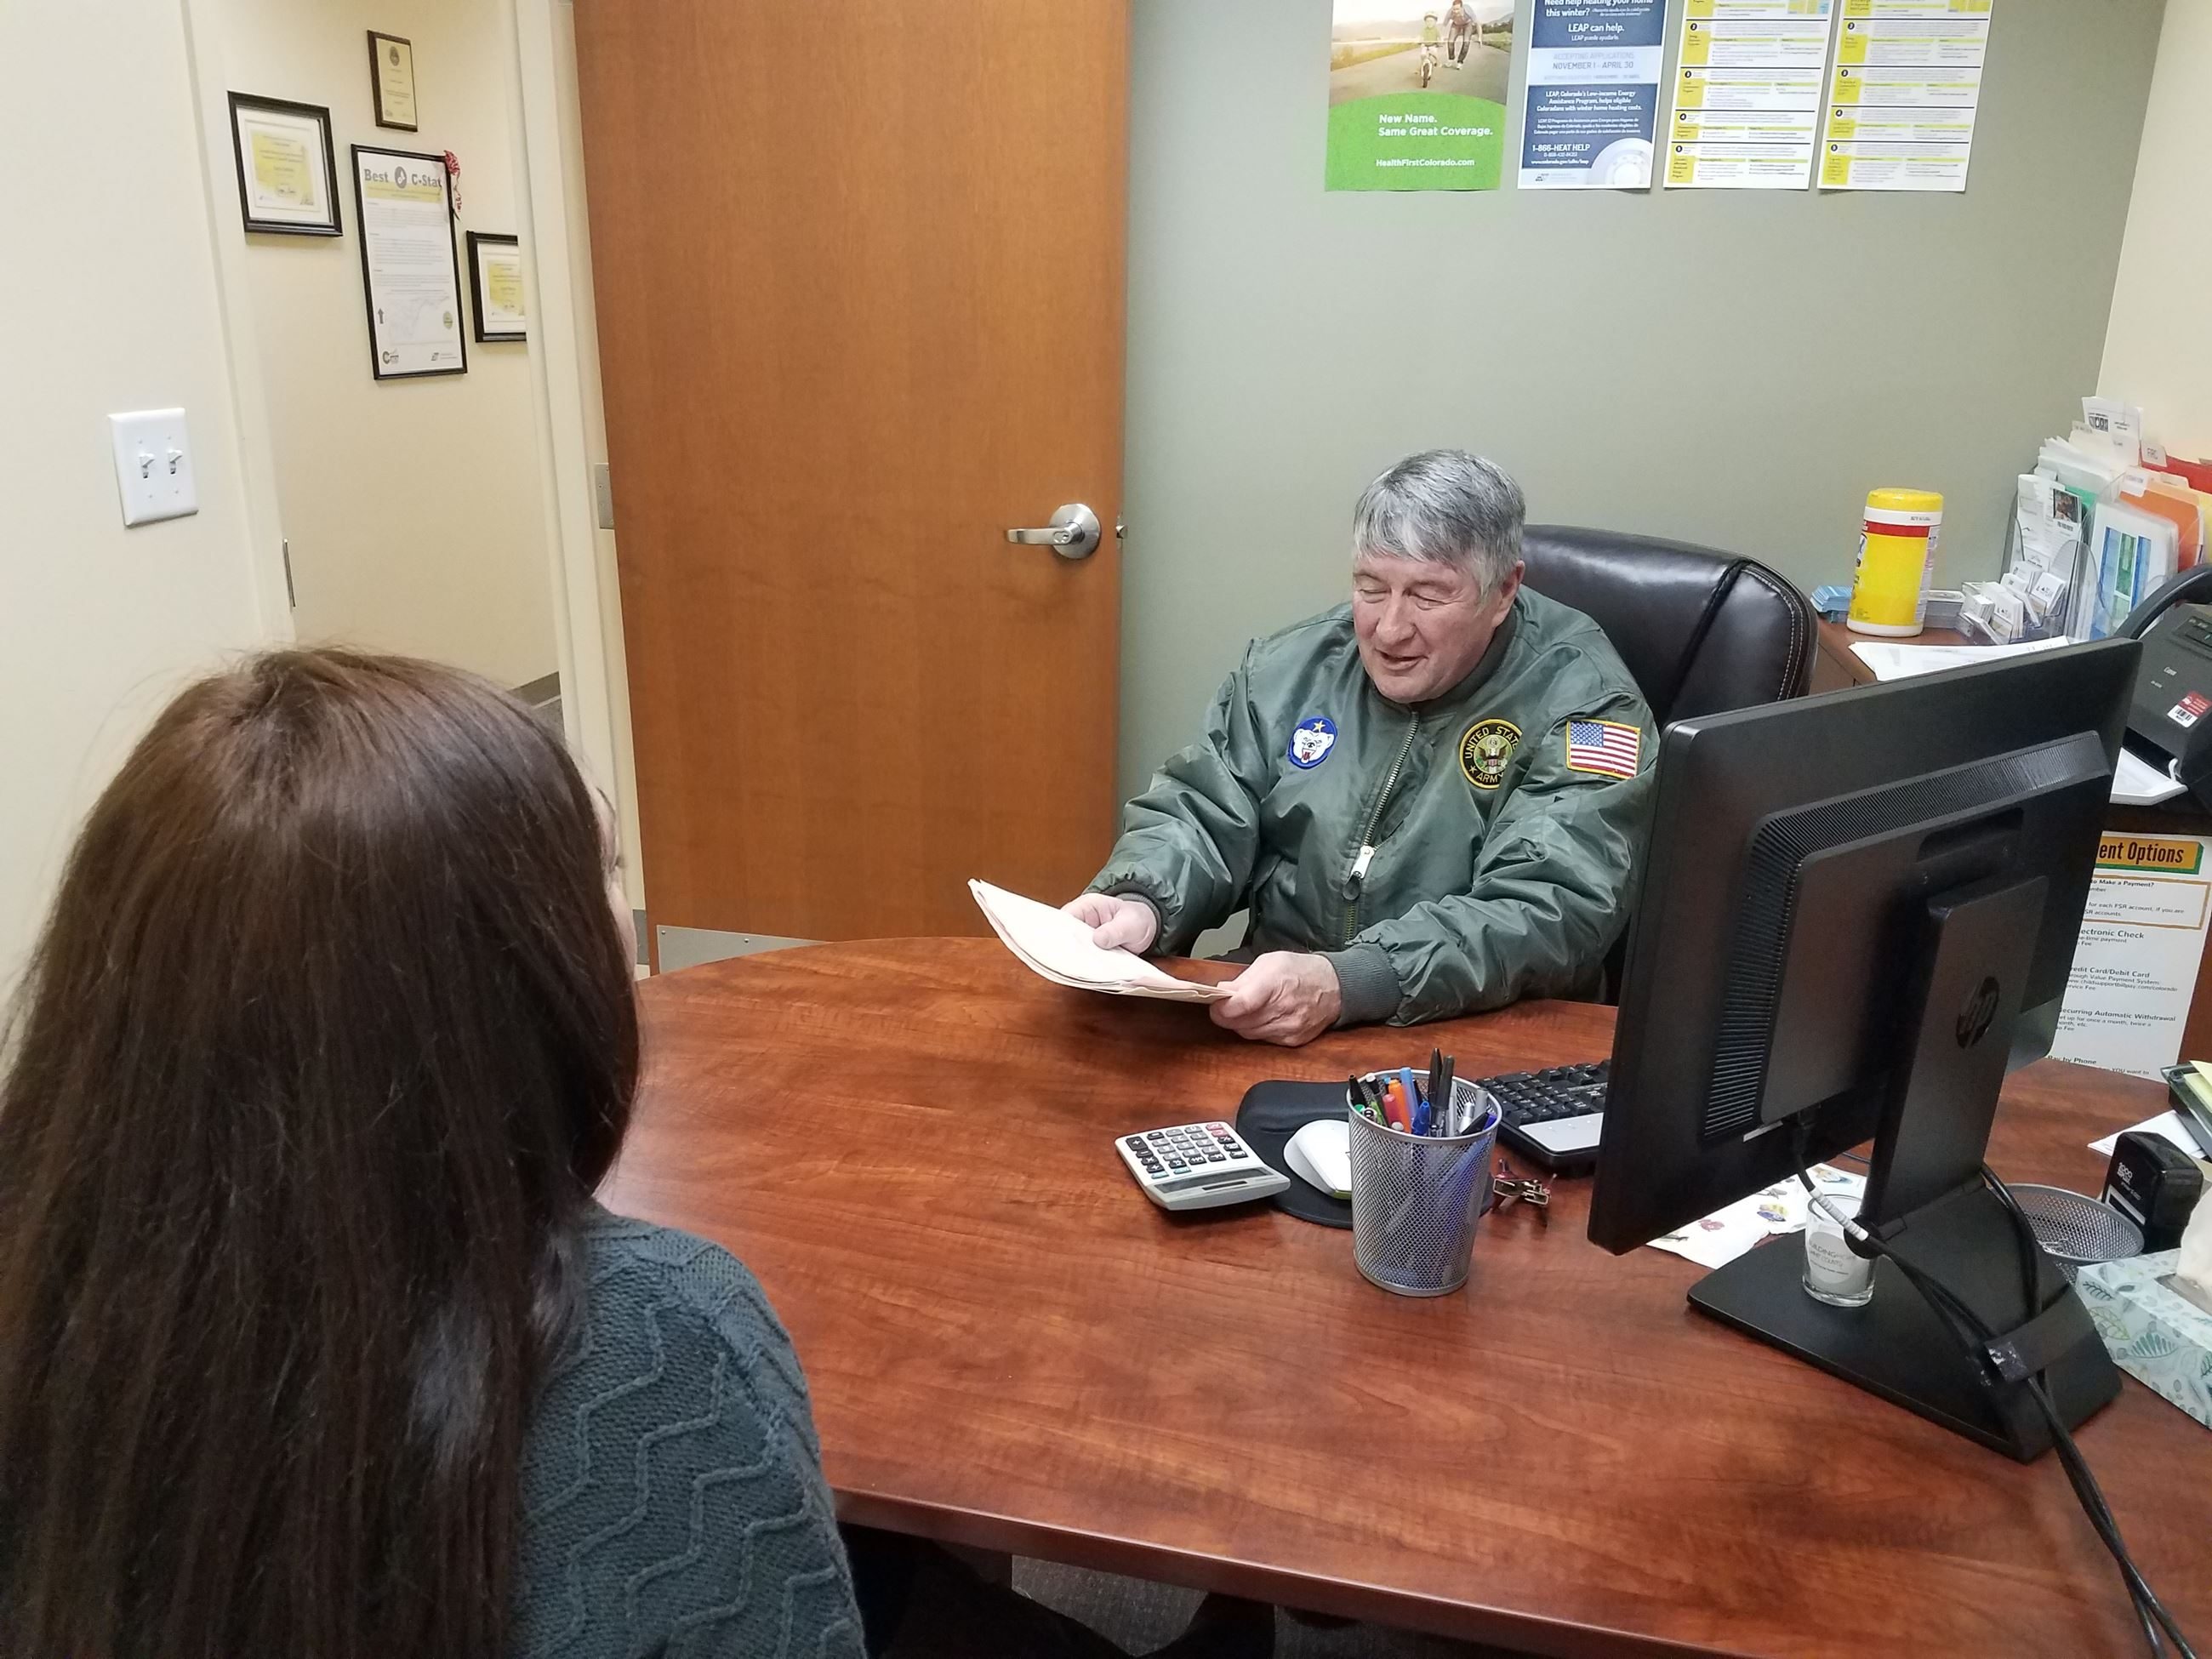 A veterans service officer in a County office.